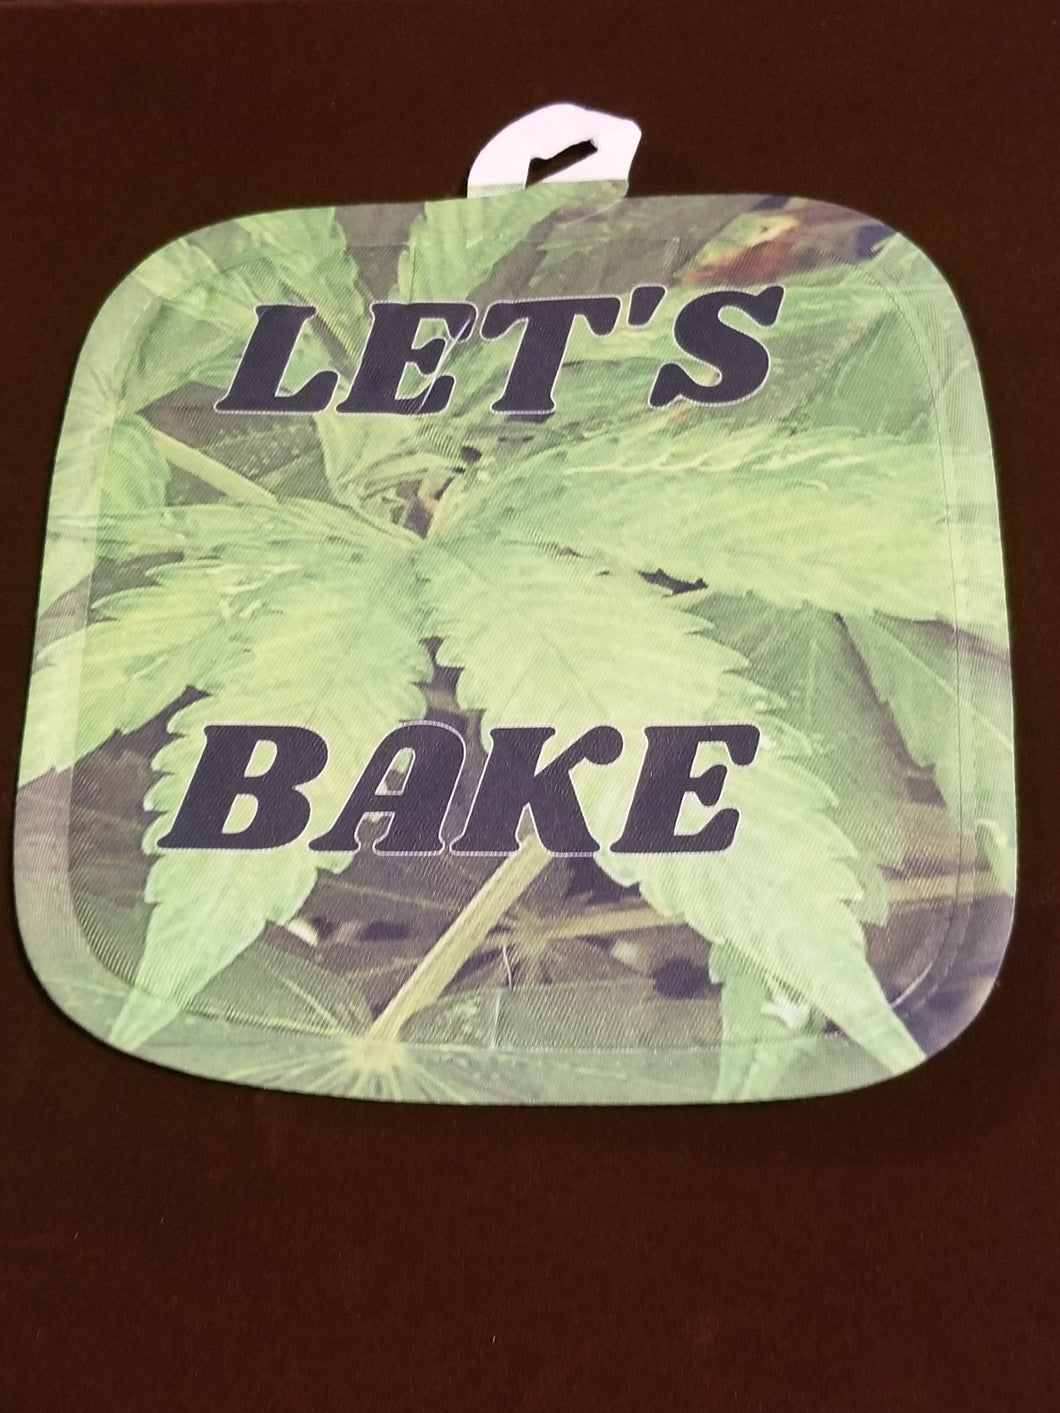 Let's Bake Pot Holder